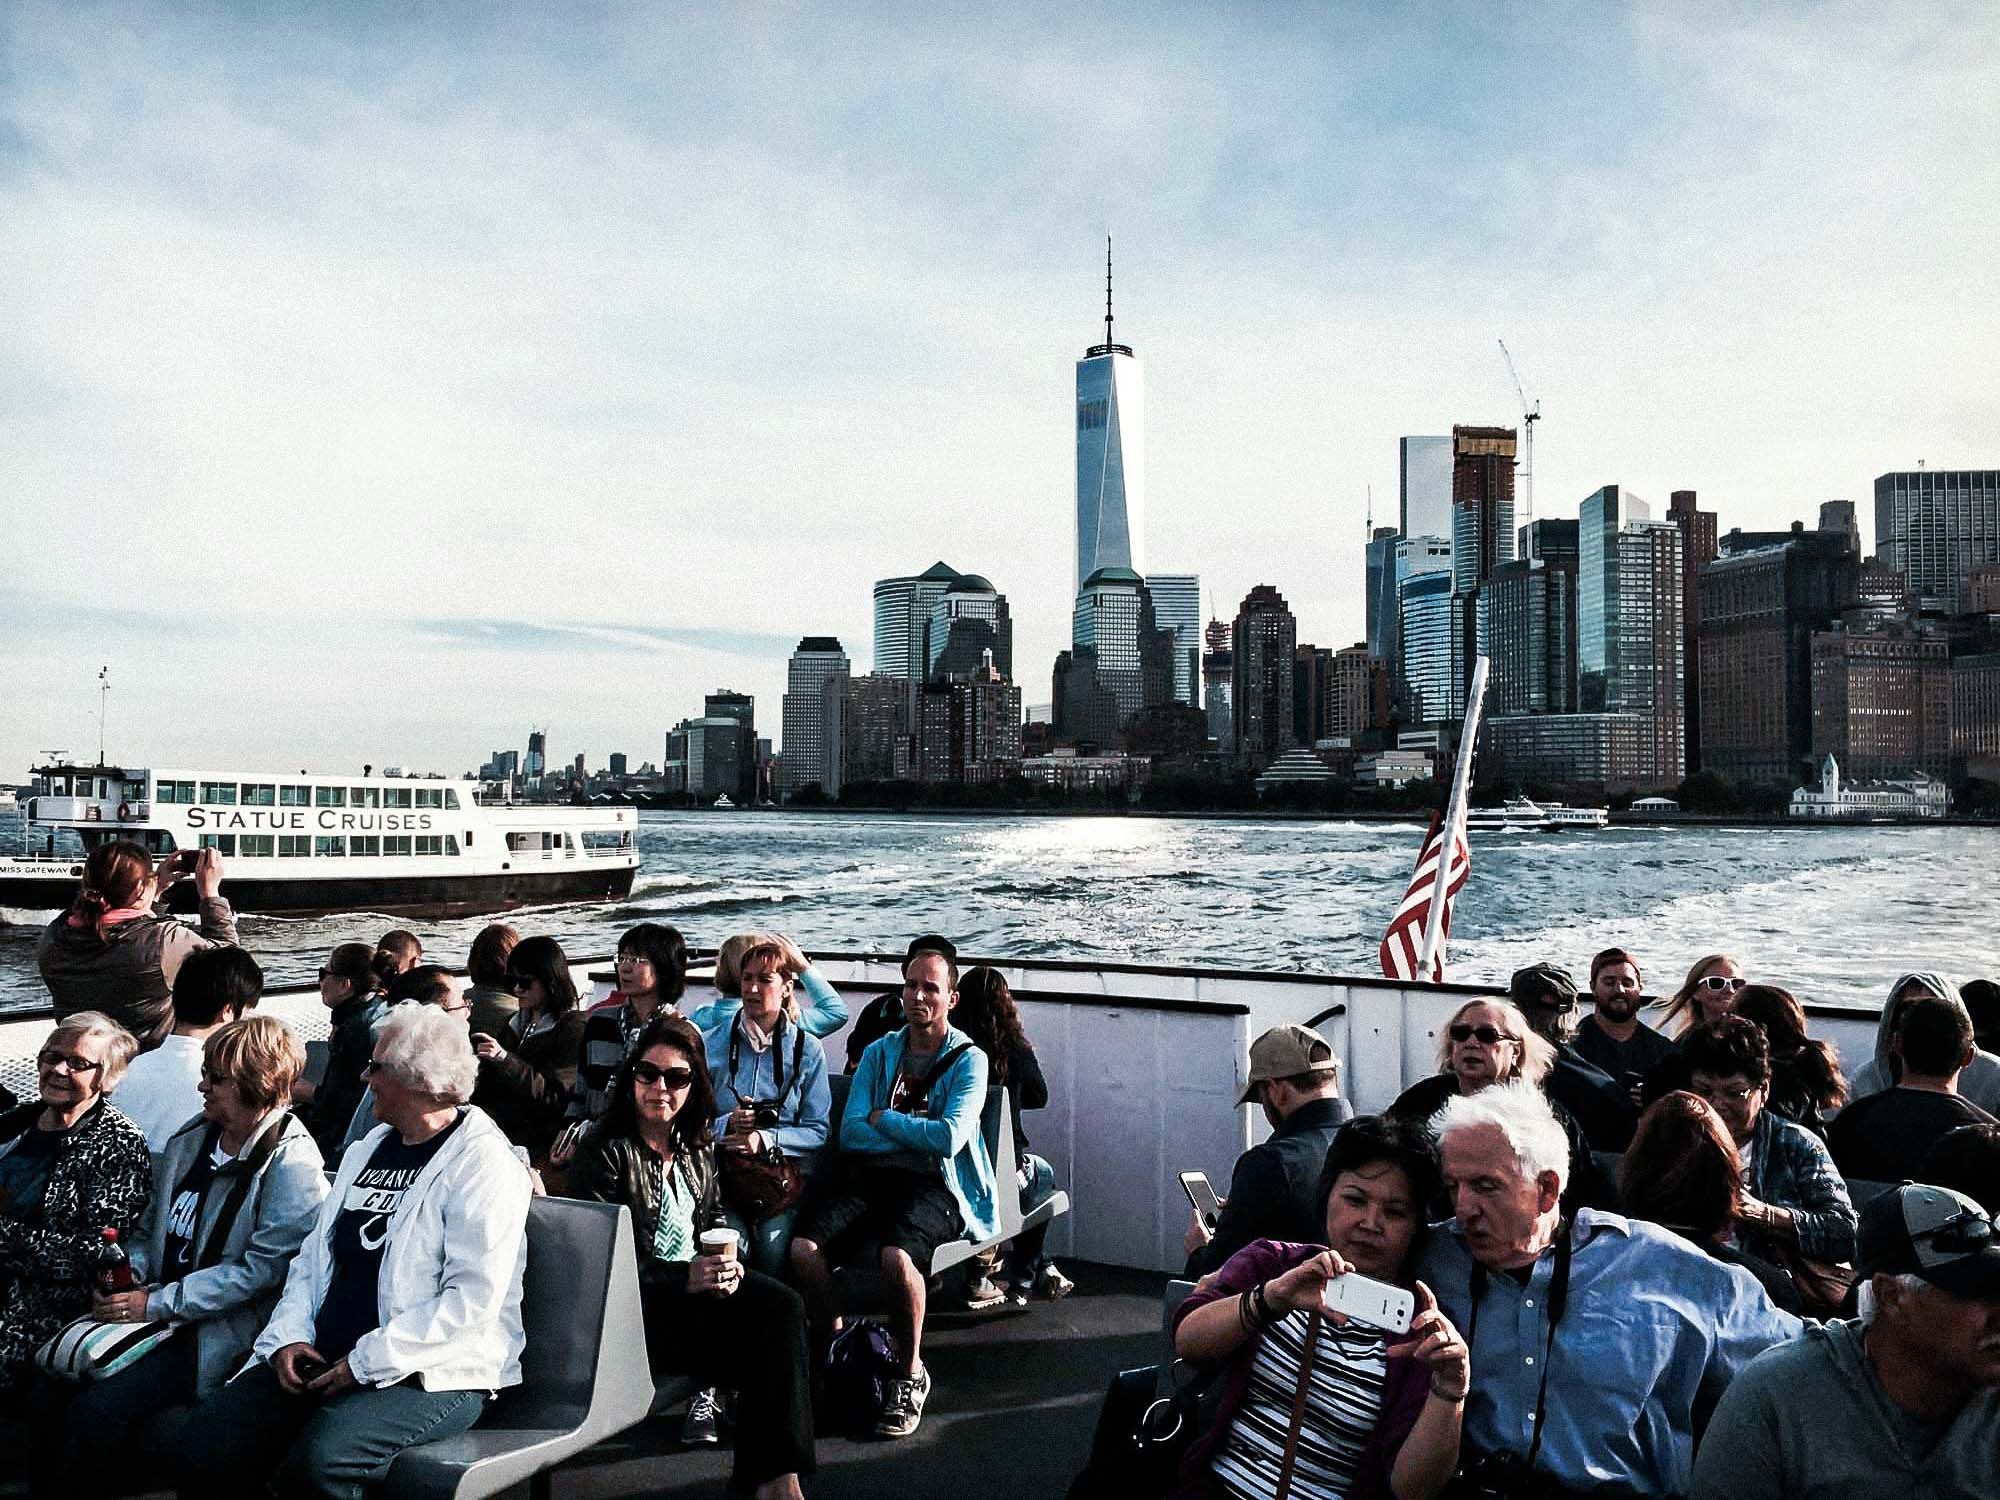 Ferry boat visiting the statue of liberty